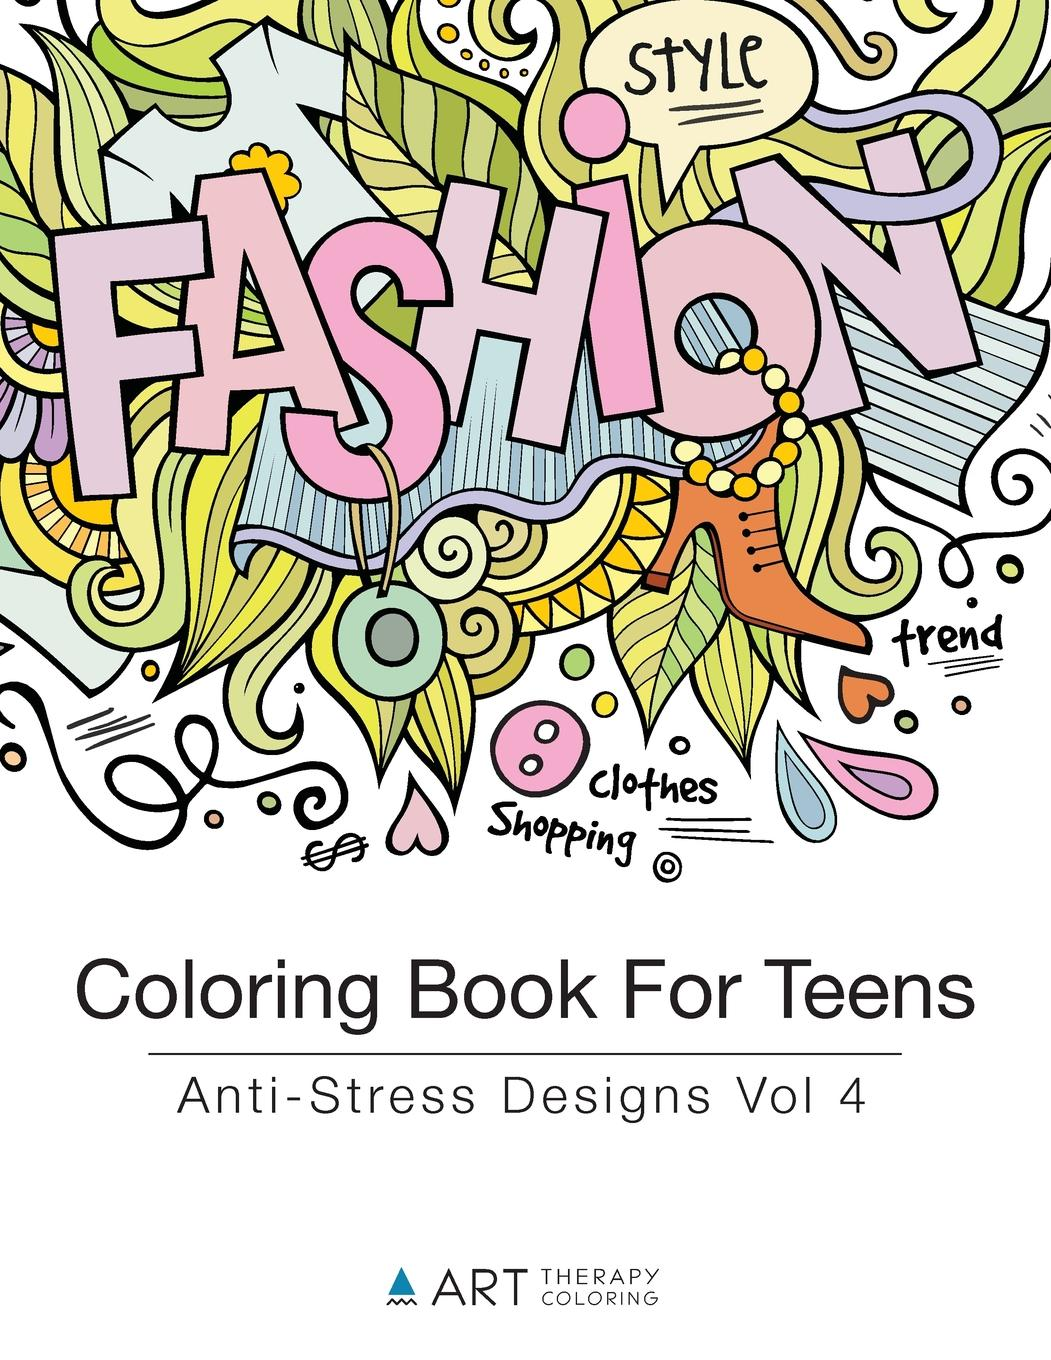 Coloring Books For Teens: Coloring Book For Teens: Anti-Stress